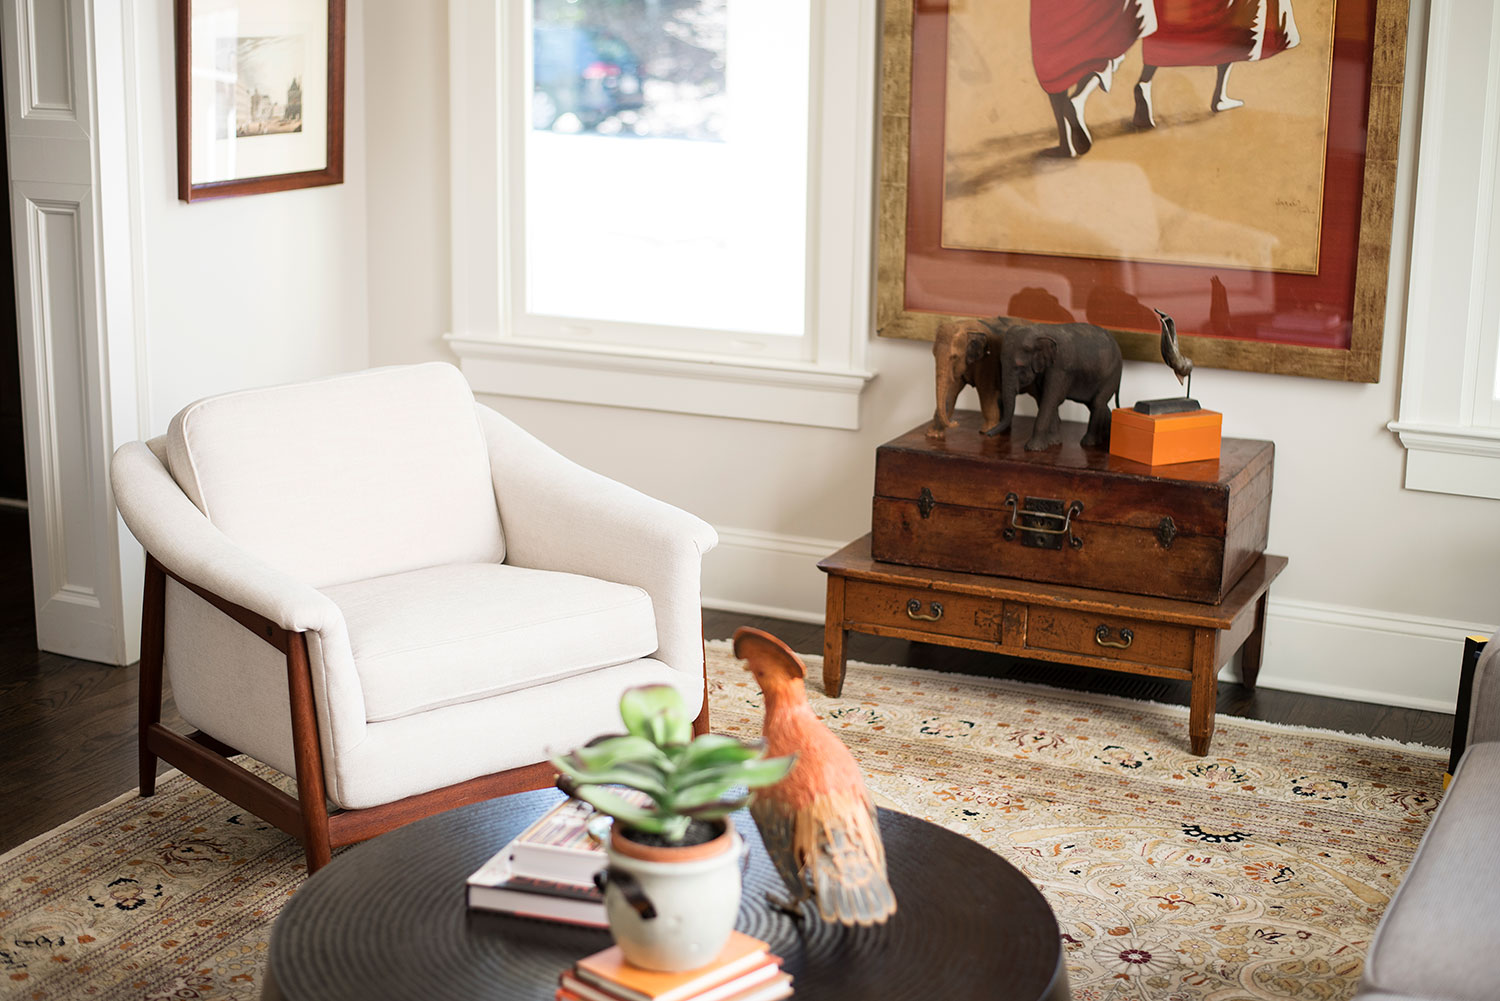 Transitional sitting room with ivory arm chair, beige area rug, and rich wood furniture